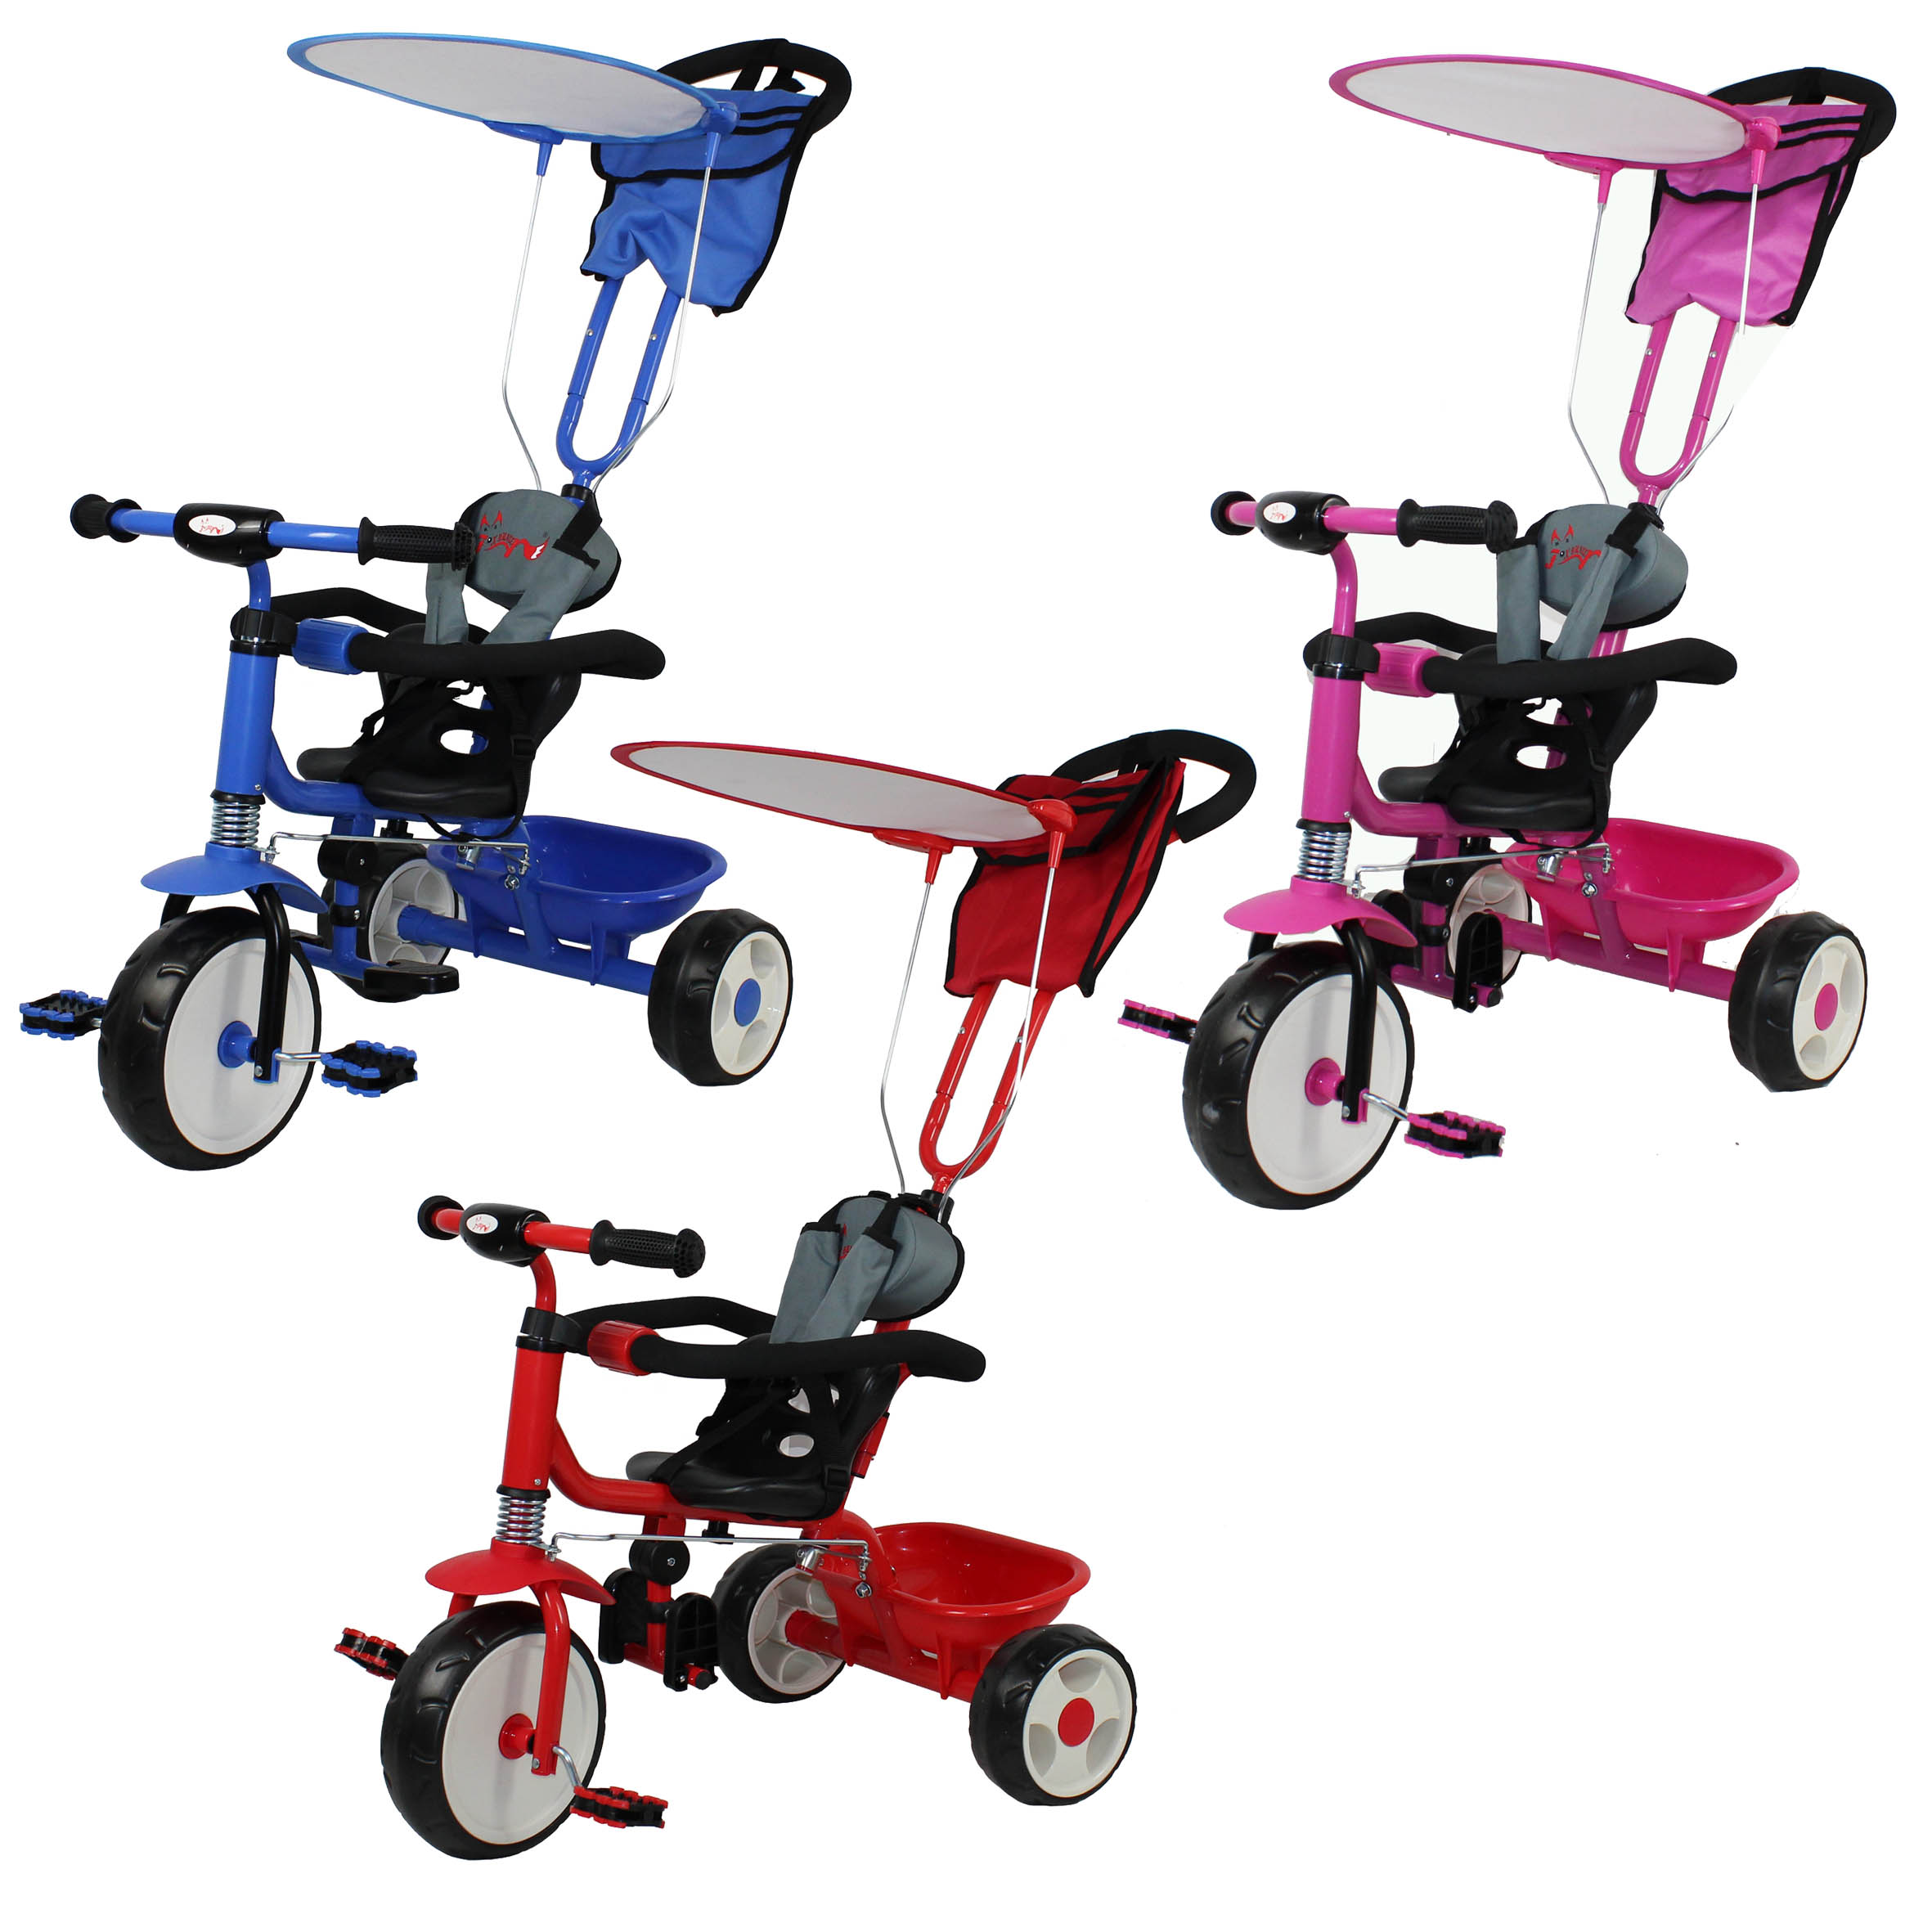 Foxhunter Kids Child Trike Tricycle 3 Wheel 4 In 1 Ride On